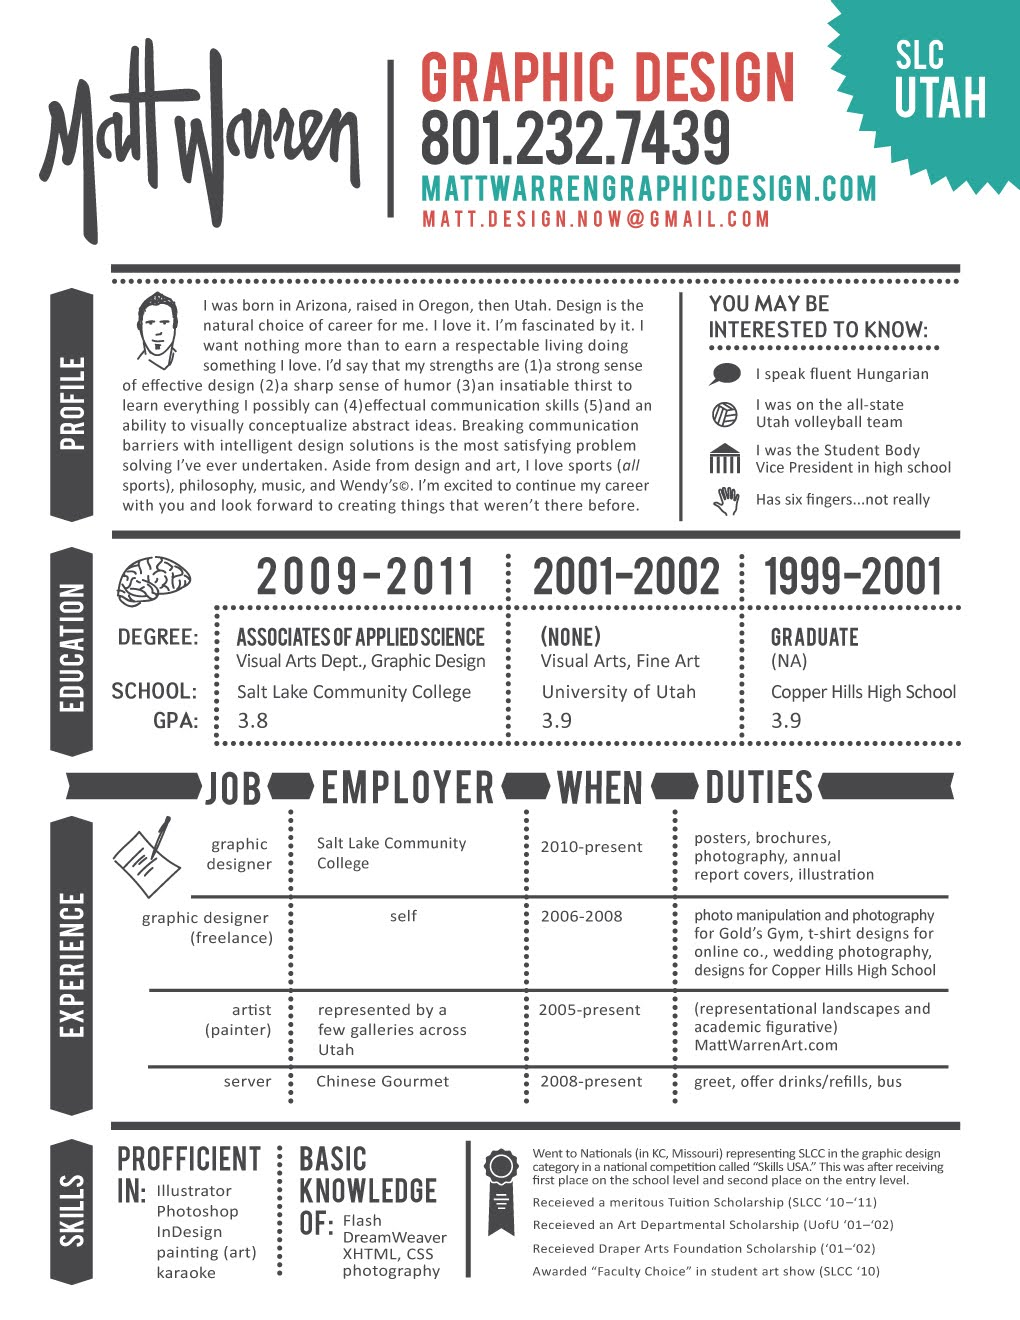 Opposenewapstandardsus  Mesmerizing  Images About Hire Me On Pinterest  Graphic Designer Resume  With Lovable  Images About Hire Me On Pinterest  Graphic Designer Resume Resume Design And Resume With Appealing Resume Job Titles Also Resume Packet In Addition Definition Of Resume For A Job And Great Skills For A Resume As Well As Real Free Resume Builder Additionally Bartender Resume Job Description From Pinterestcom With Opposenewapstandardsus  Lovable  Images About Hire Me On Pinterest  Graphic Designer Resume  With Appealing  Images About Hire Me On Pinterest  Graphic Designer Resume Resume Design And Resume And Mesmerizing Resume Job Titles Also Resume Packet In Addition Definition Of Resume For A Job From Pinterestcom